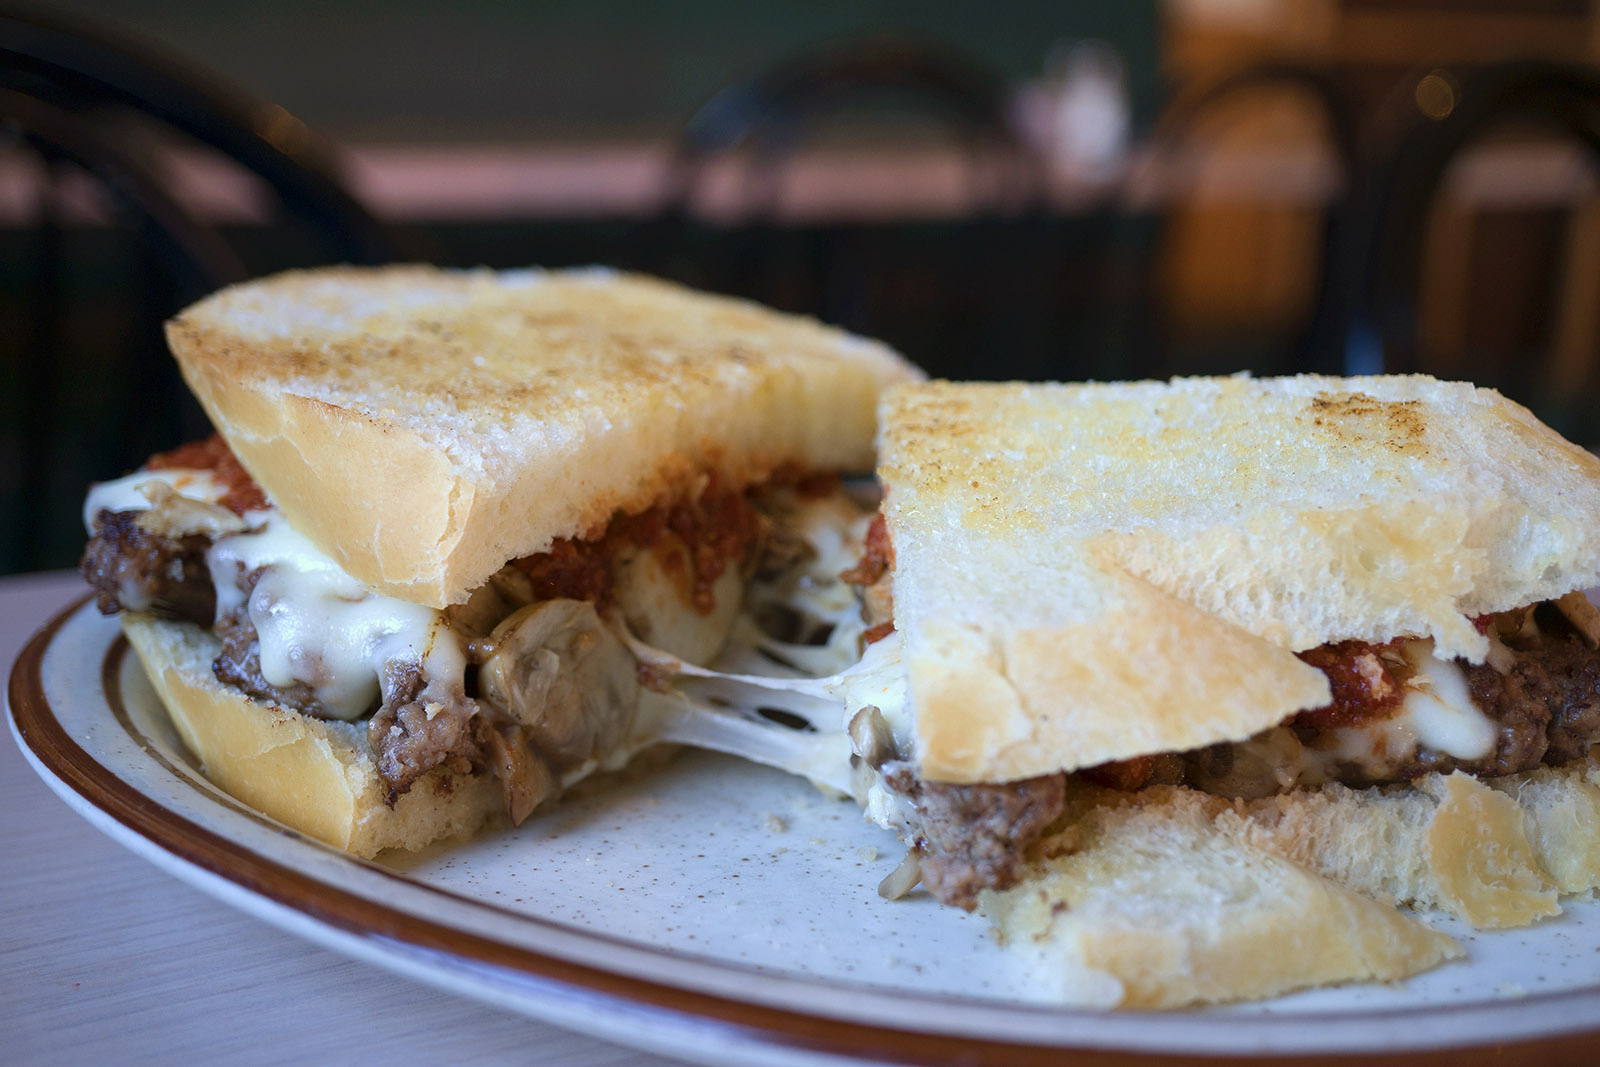 SATURDAY: Italian Steak Sandwich with Fries Image